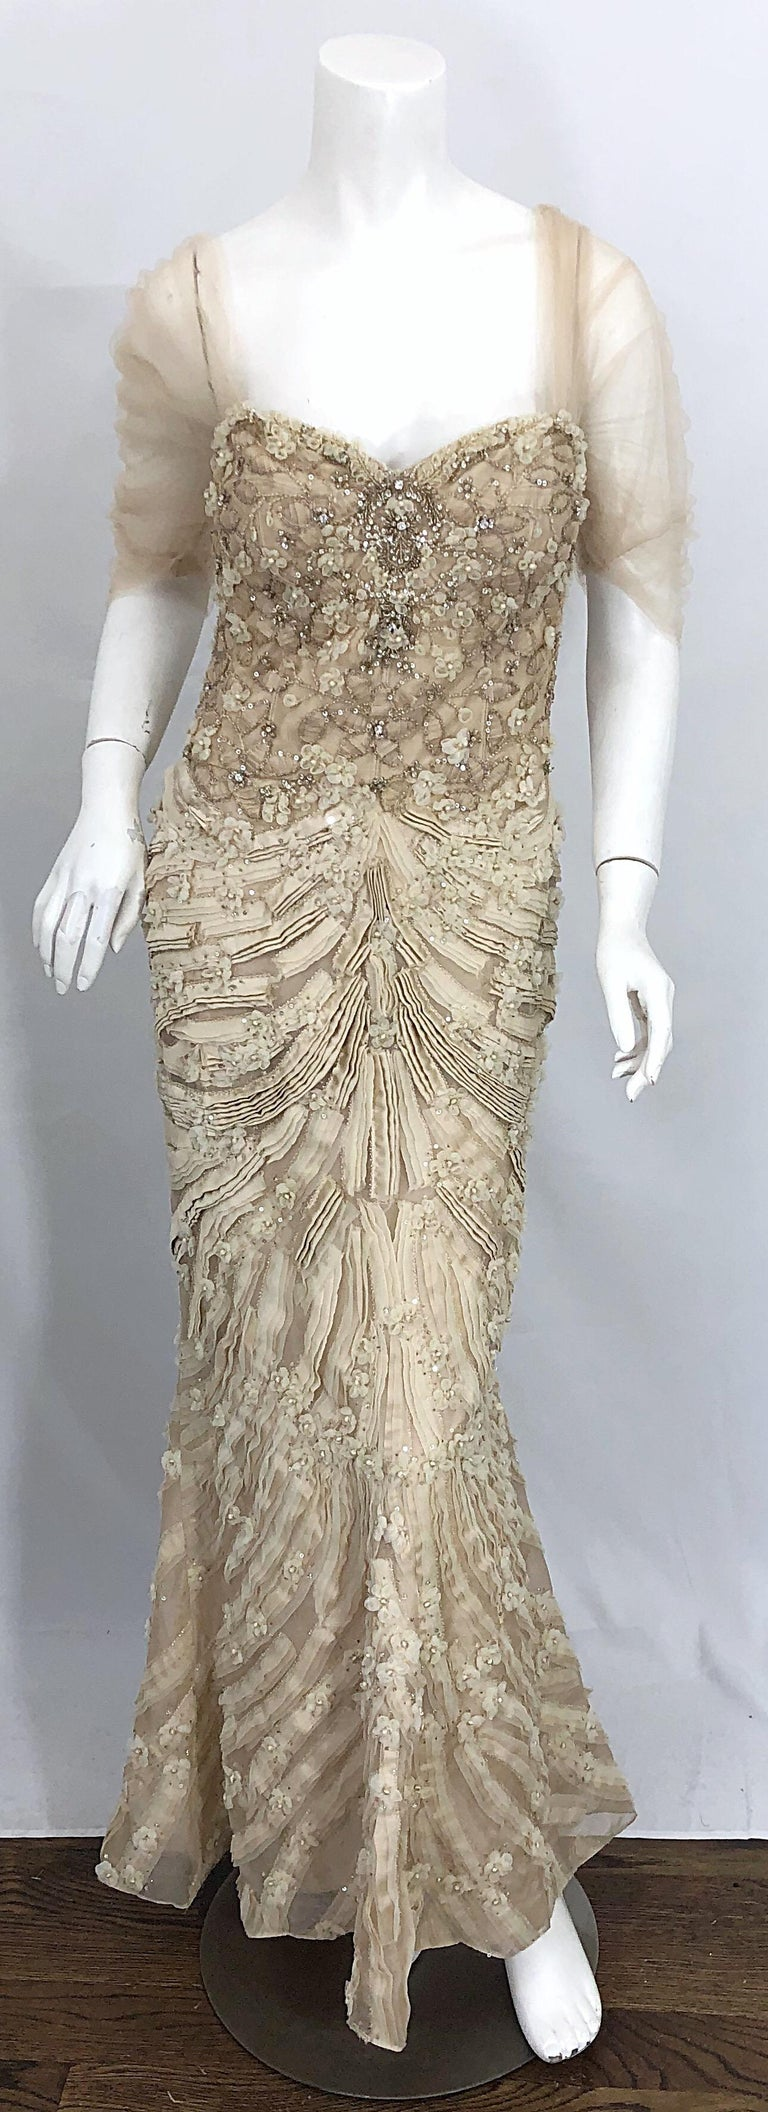 Monique Lhuillier Couture Size 10 / 12 Beige Rhinestone Beaded $12,000 Silk Gown For Sale 13